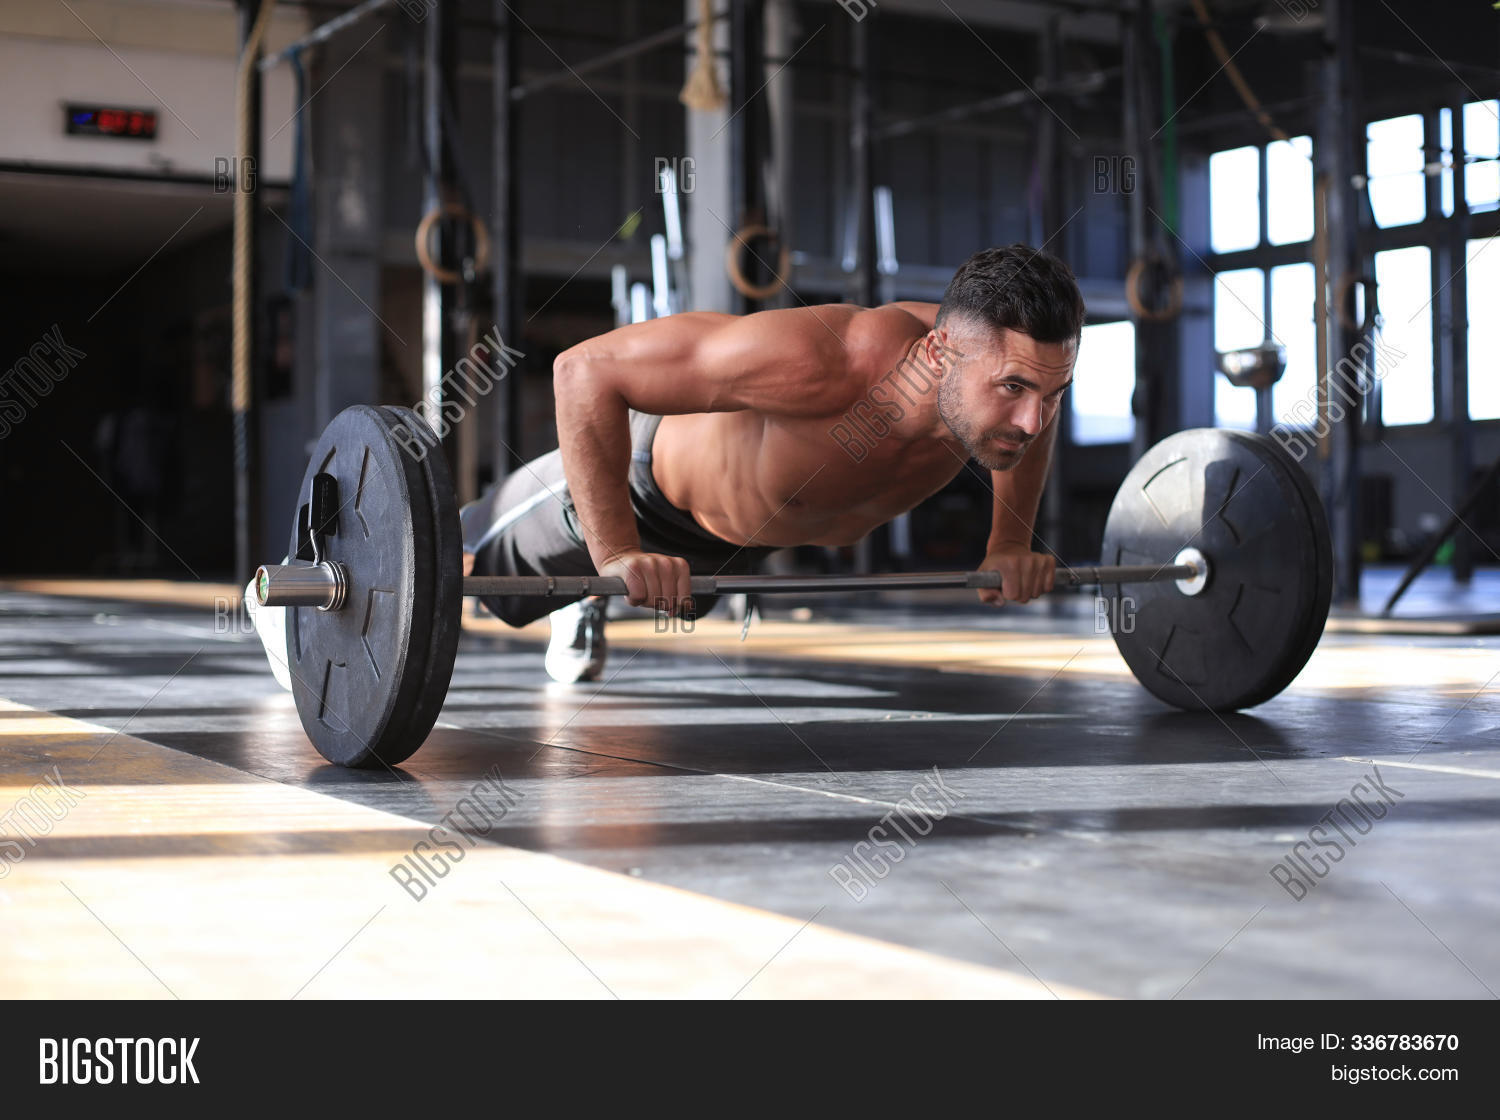 active,adult,athlete,athletic,attractive,bars,body,bodybuilding,building,club,dumbbell,effort,equipment,exercise,fit,fitness,floor,forearm,girl,gym,hand,heavy,horizontal,indoor,lift,male,man,mid,muscular,parallel,parallettes,perfect,physique,plank,portrait,power,pretty,push,push-up,pushup,sport,strength,trainer,training,up,weight,workout,young